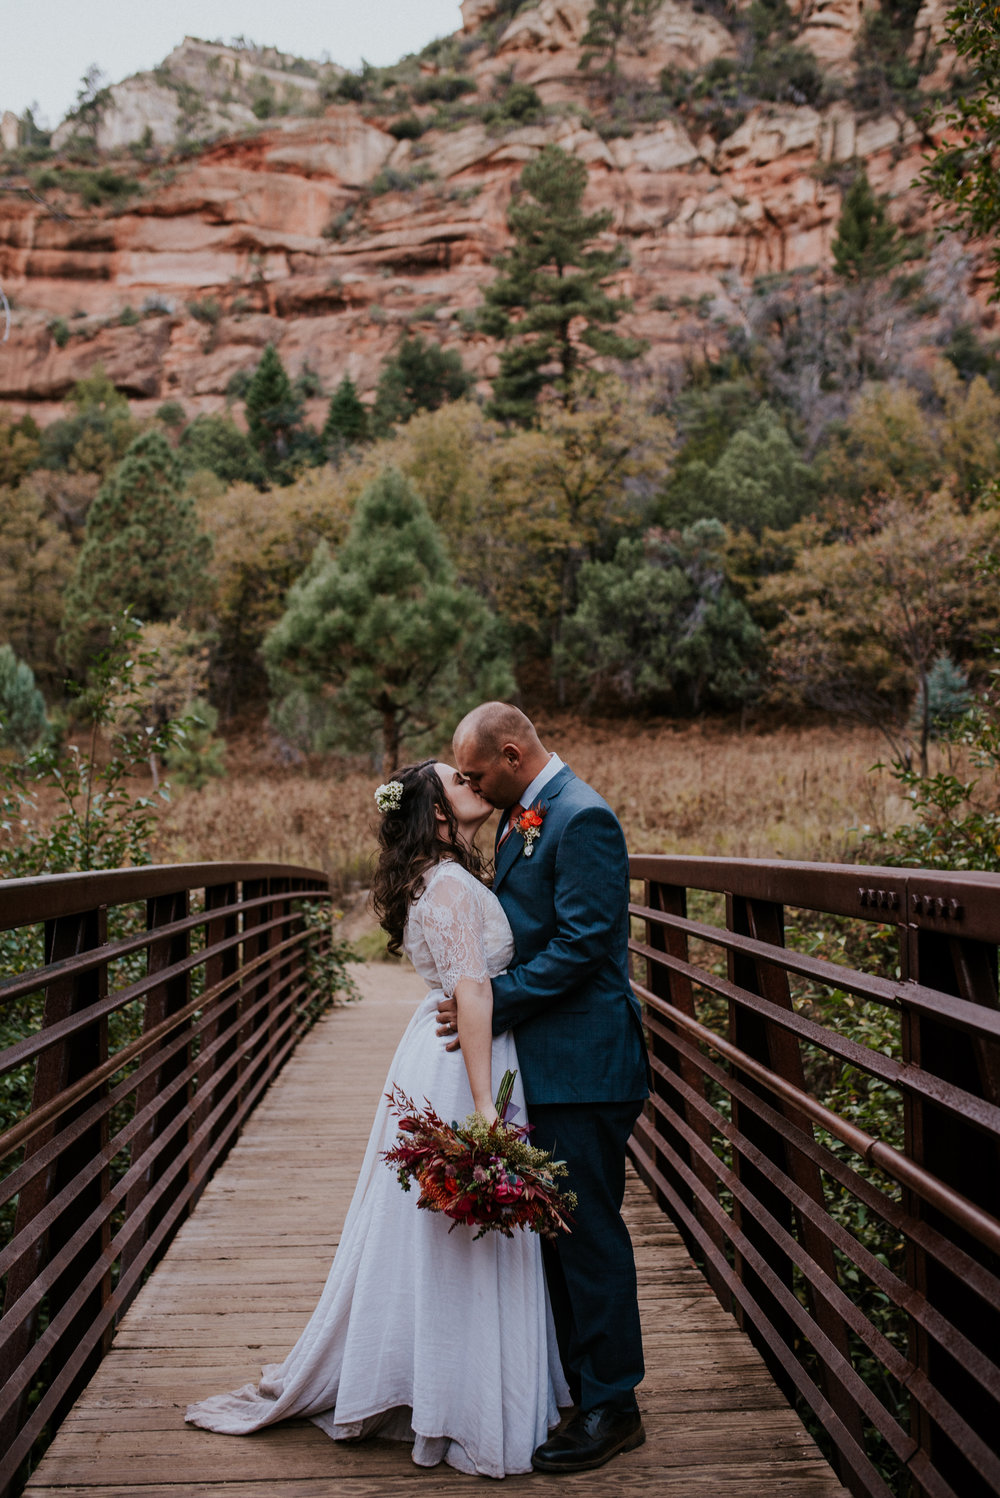 Intimate Adventure Sedona Elopement-17.jpg